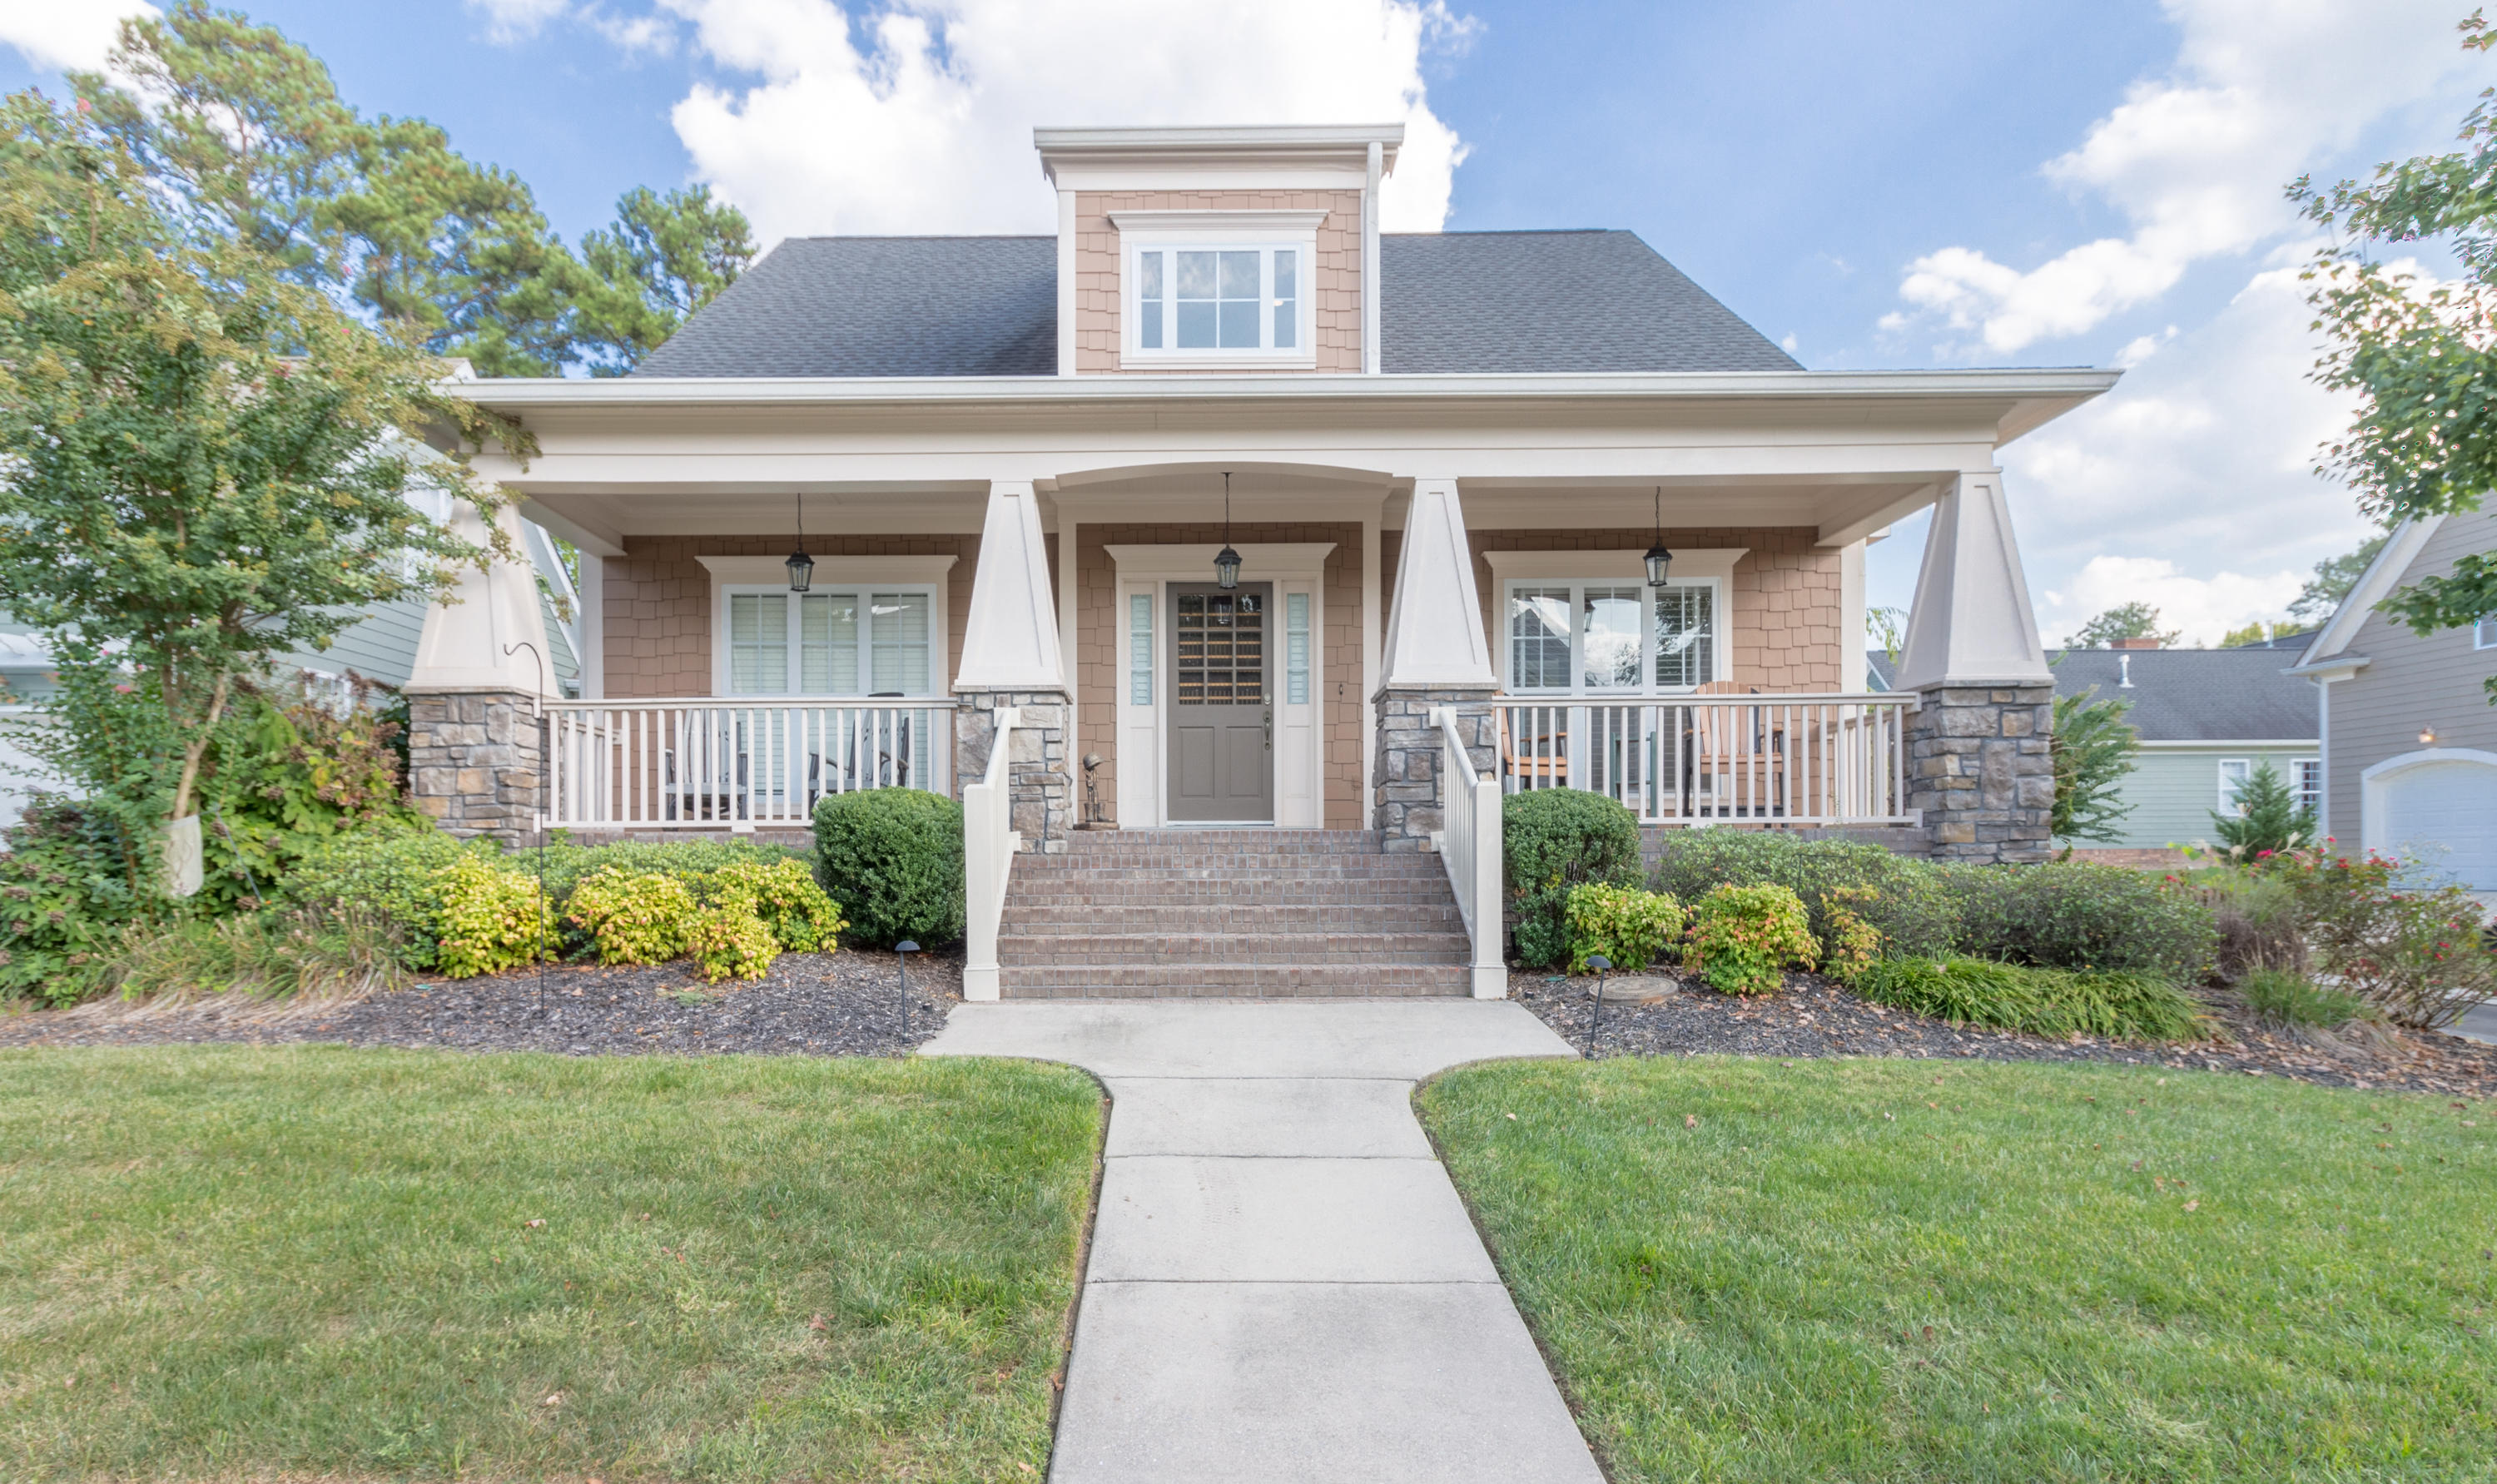 1021  Reunion  Dr 37421 - One of Chattanooga Homes for Sale